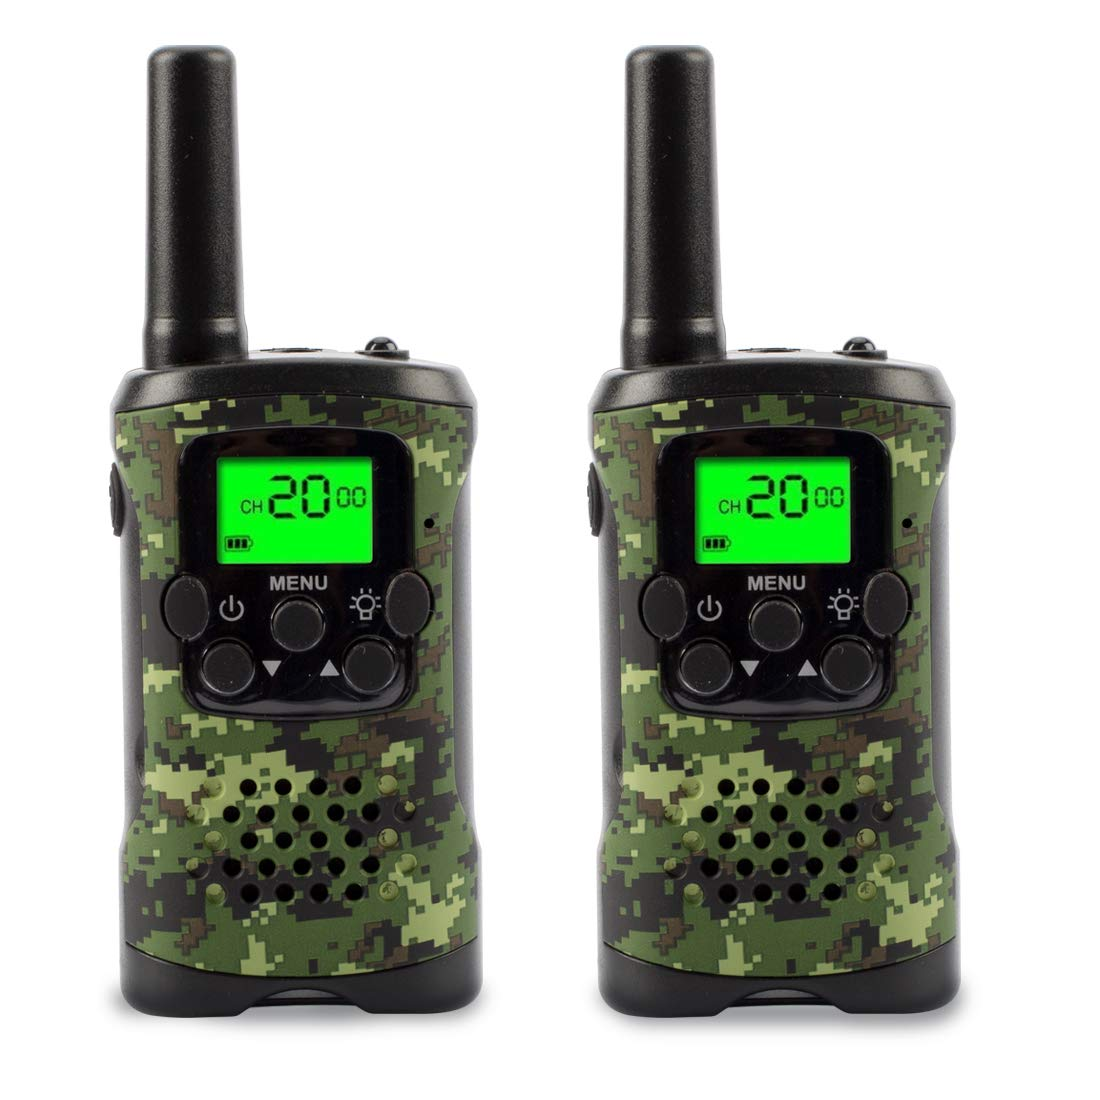 Walkie Talkies for Kids, Kids Walkie Talkies Two-Way Radios with 22 Channels FRS/GMRS Pair of Walkie Talkies for Kids, Toys for Boys and Girls (Camo)